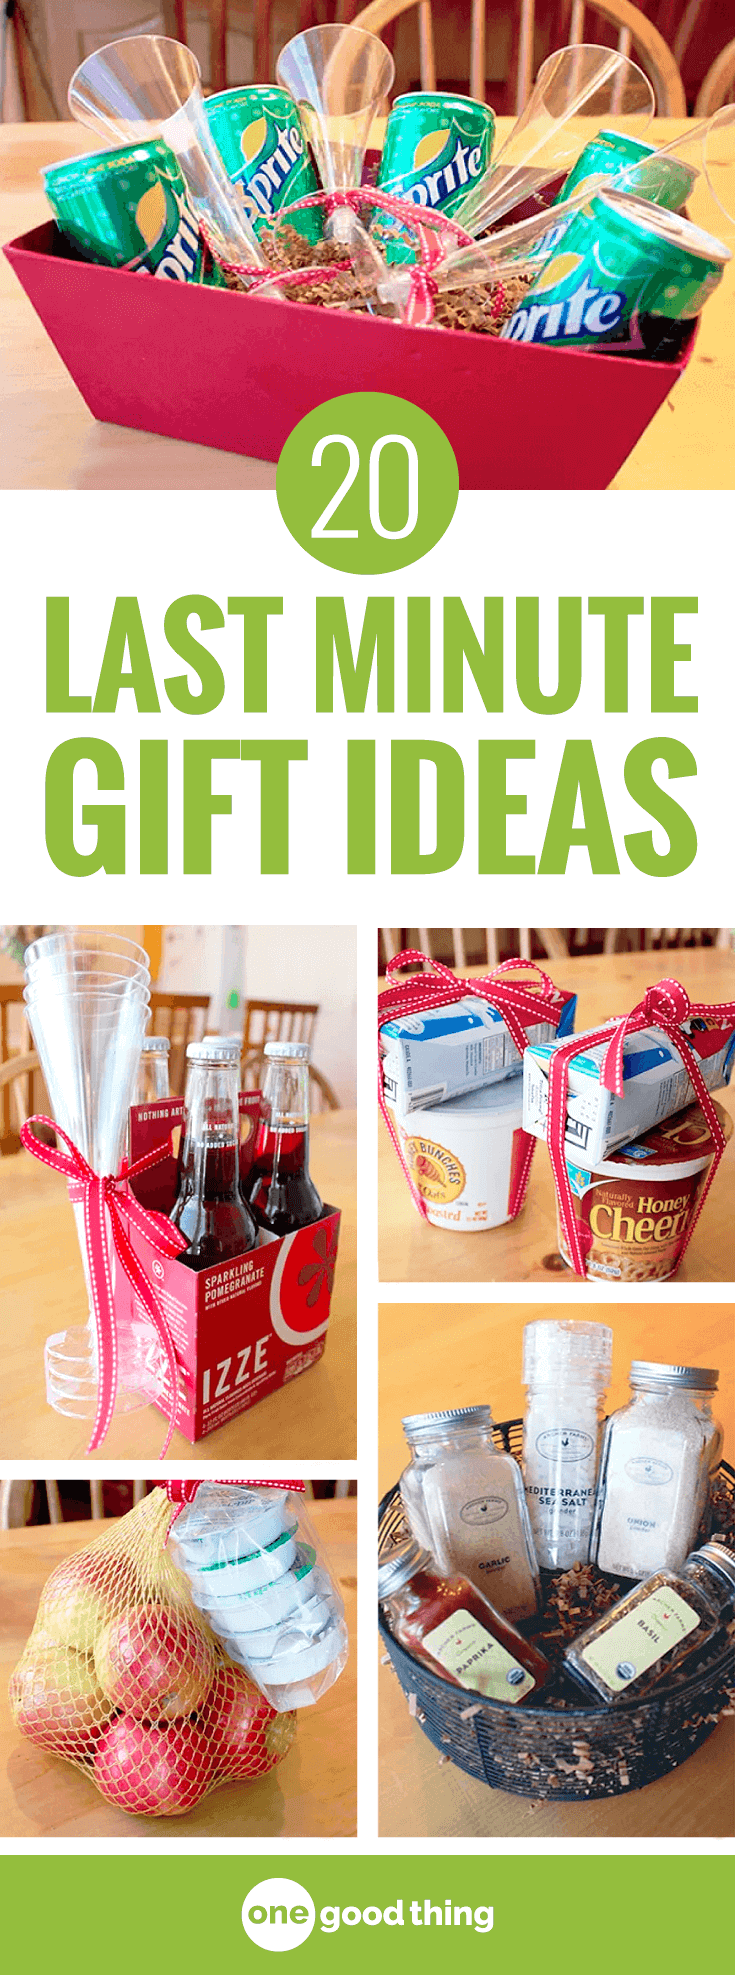 20 Simple, Last-Minute Gift Ideas From Your Grocery Store!